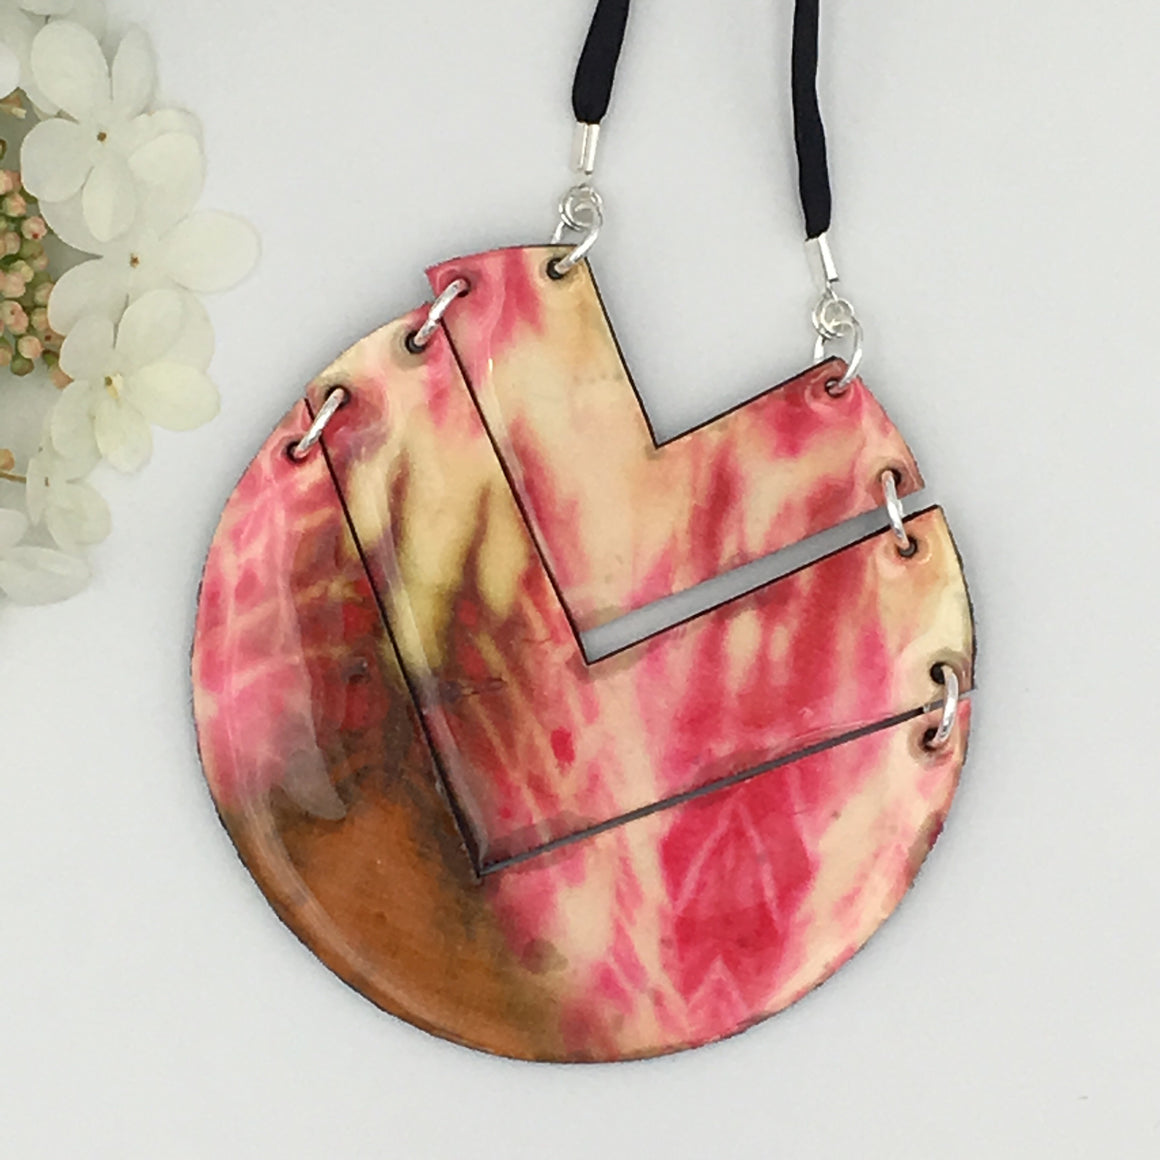 Lupe shibori silk necklace in hot pink/ivory/bronze